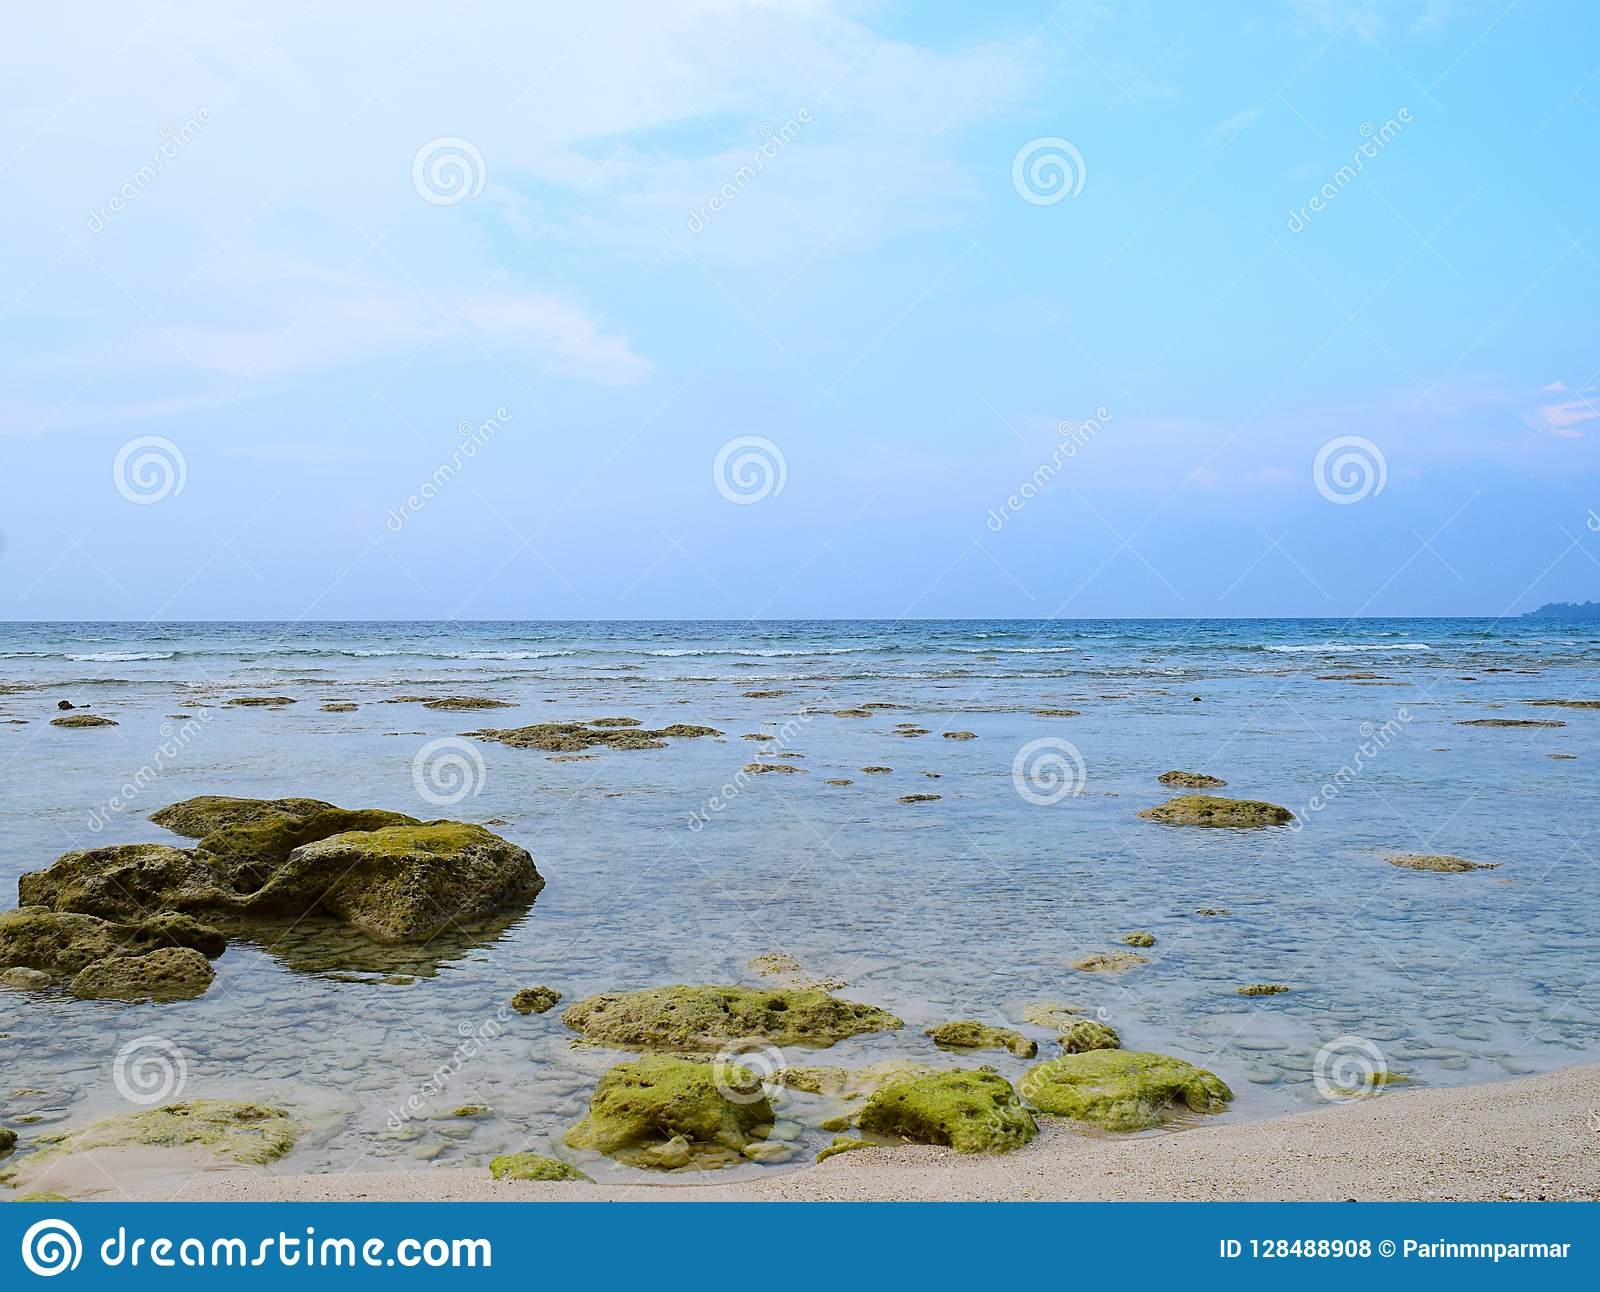 Azure Clean Sea Water with Underwater Stones and Blue Sky - Natural Background - Neil Island, Andaman Nicobar, India